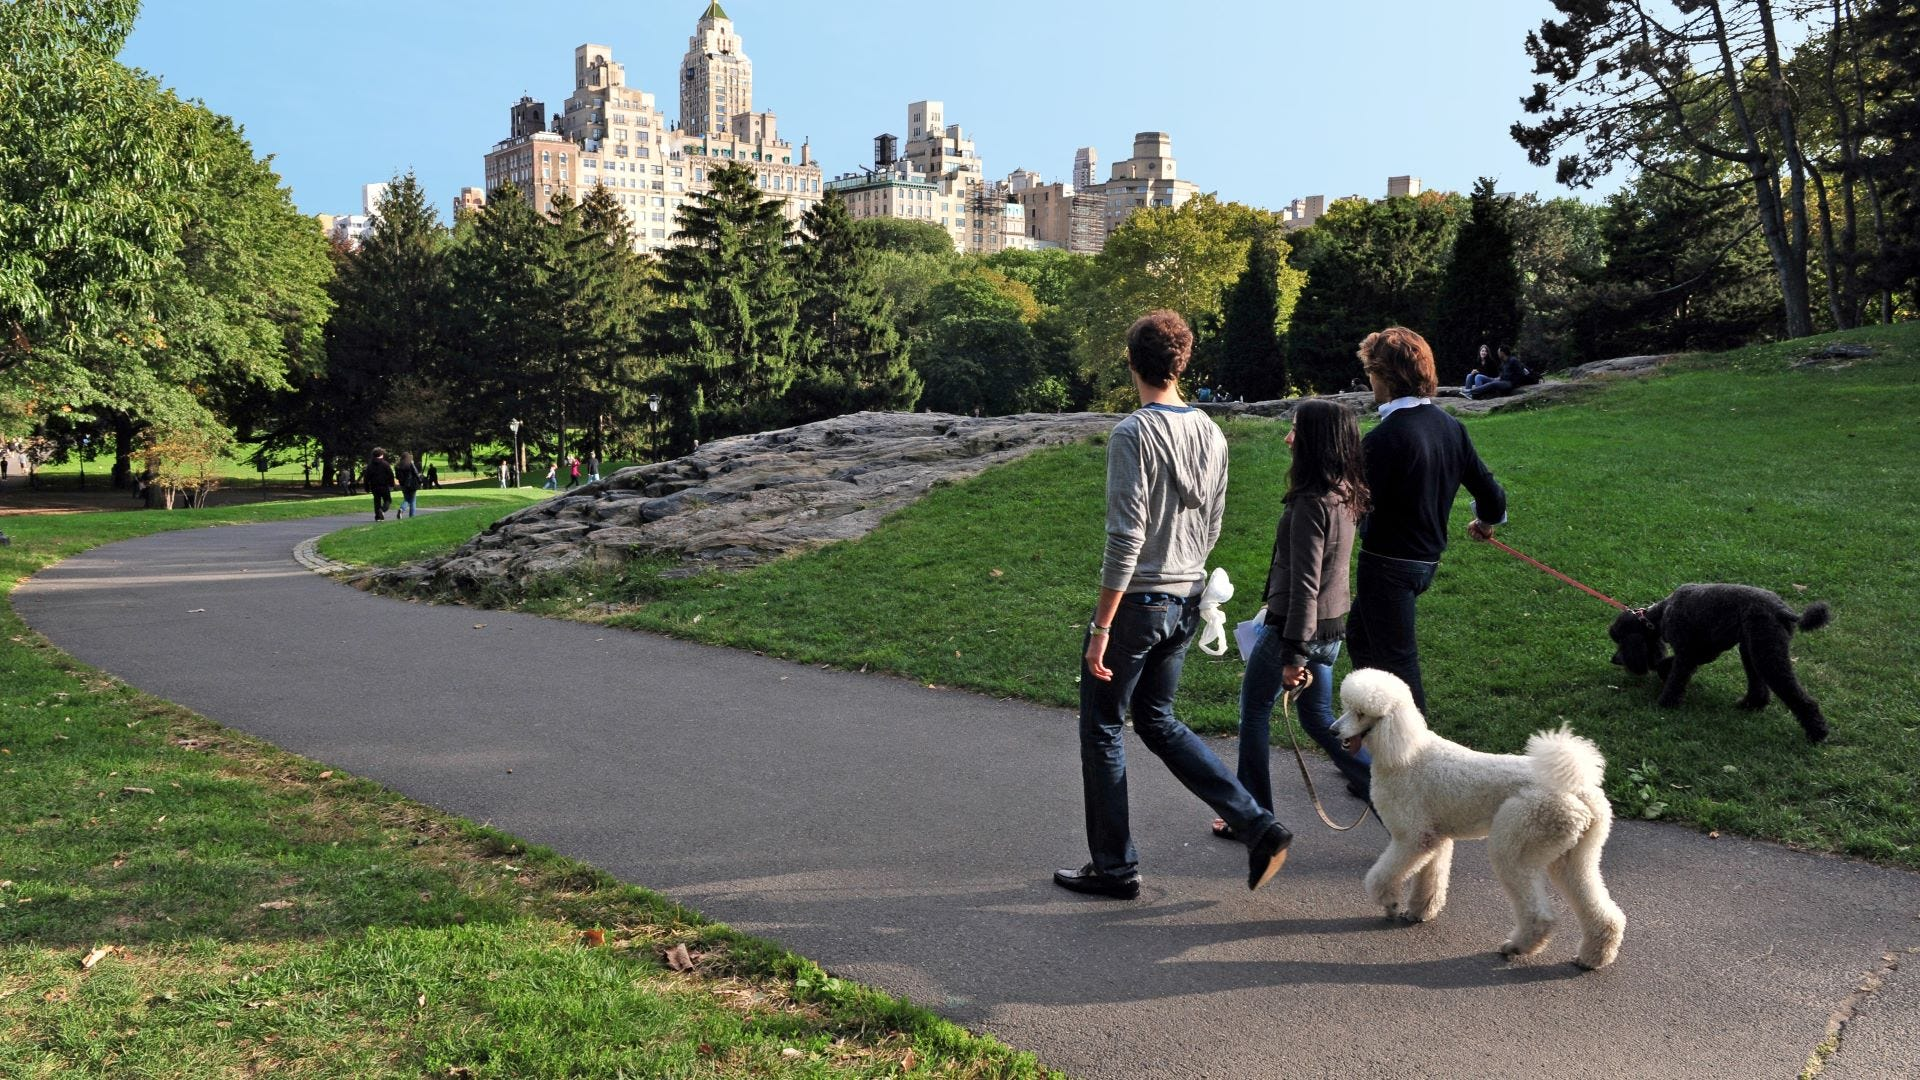 Three people walking with two standard poodles in Central Park.